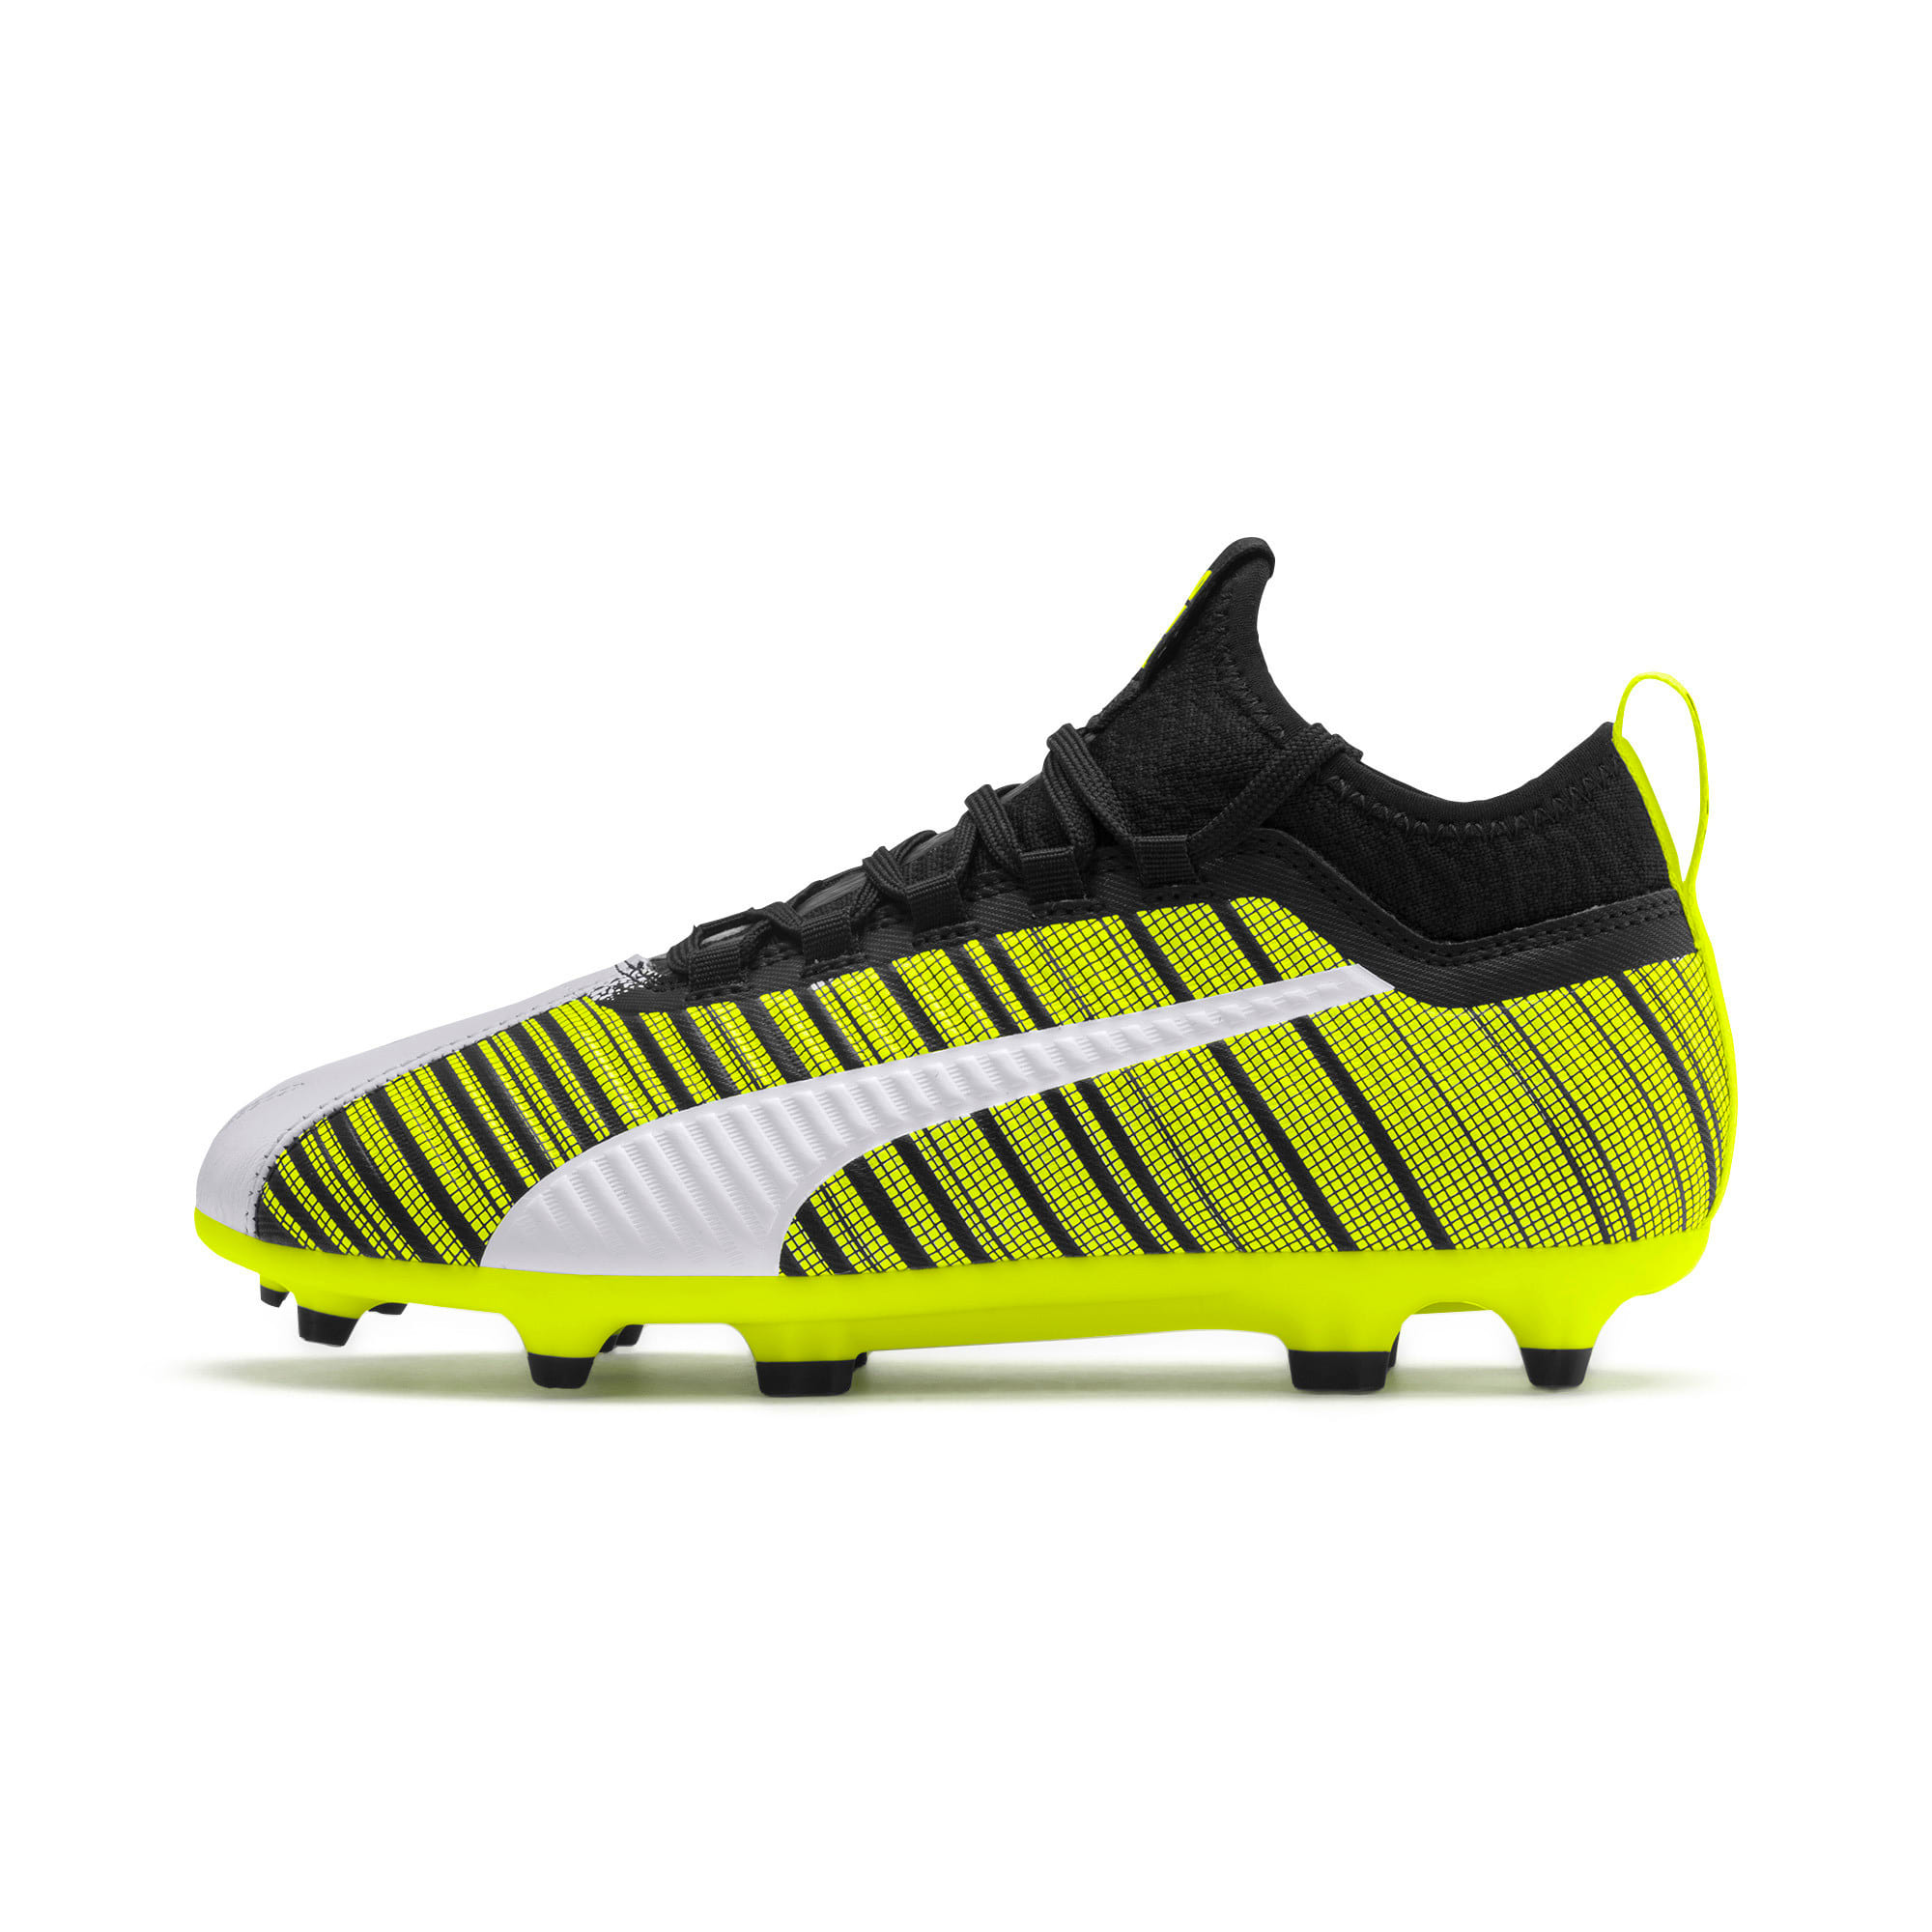 Thumbnail 1 of PUMA ONE 5.4 Youth Football Boots, White-Black-Yellow Alert, medium